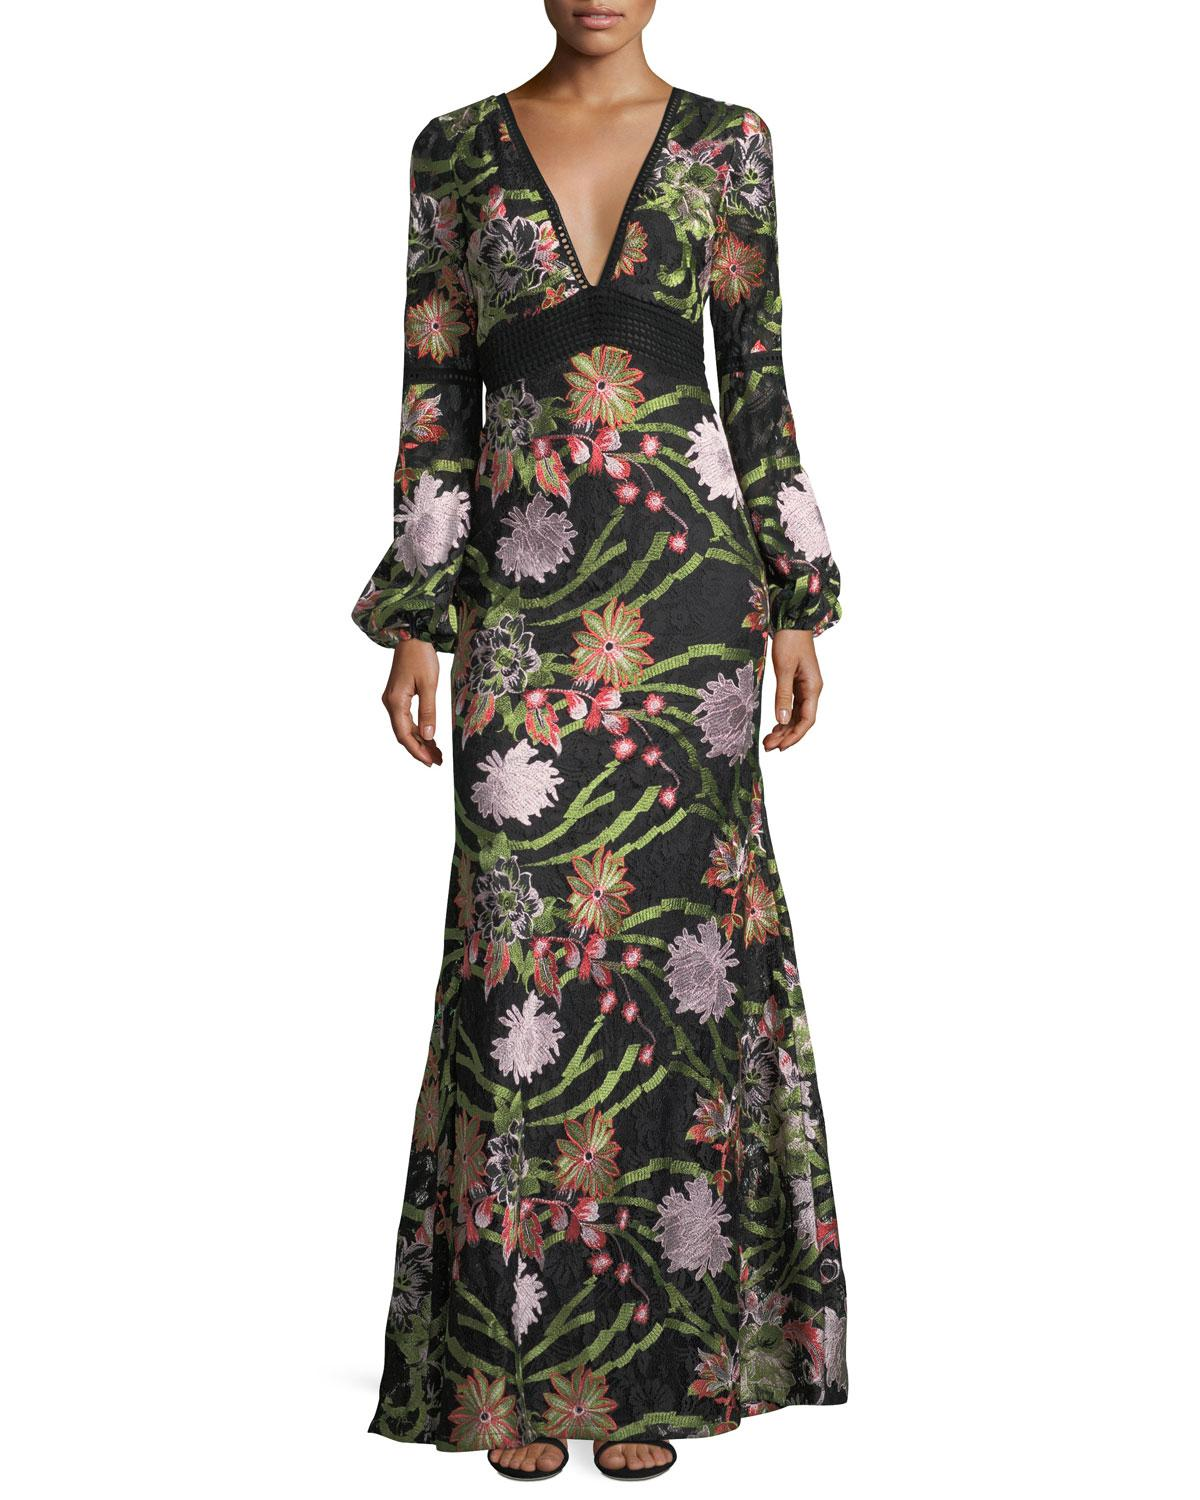 Lyst - Badgley Mischka Boho Floral Crochet Lace Evening Gown in ...